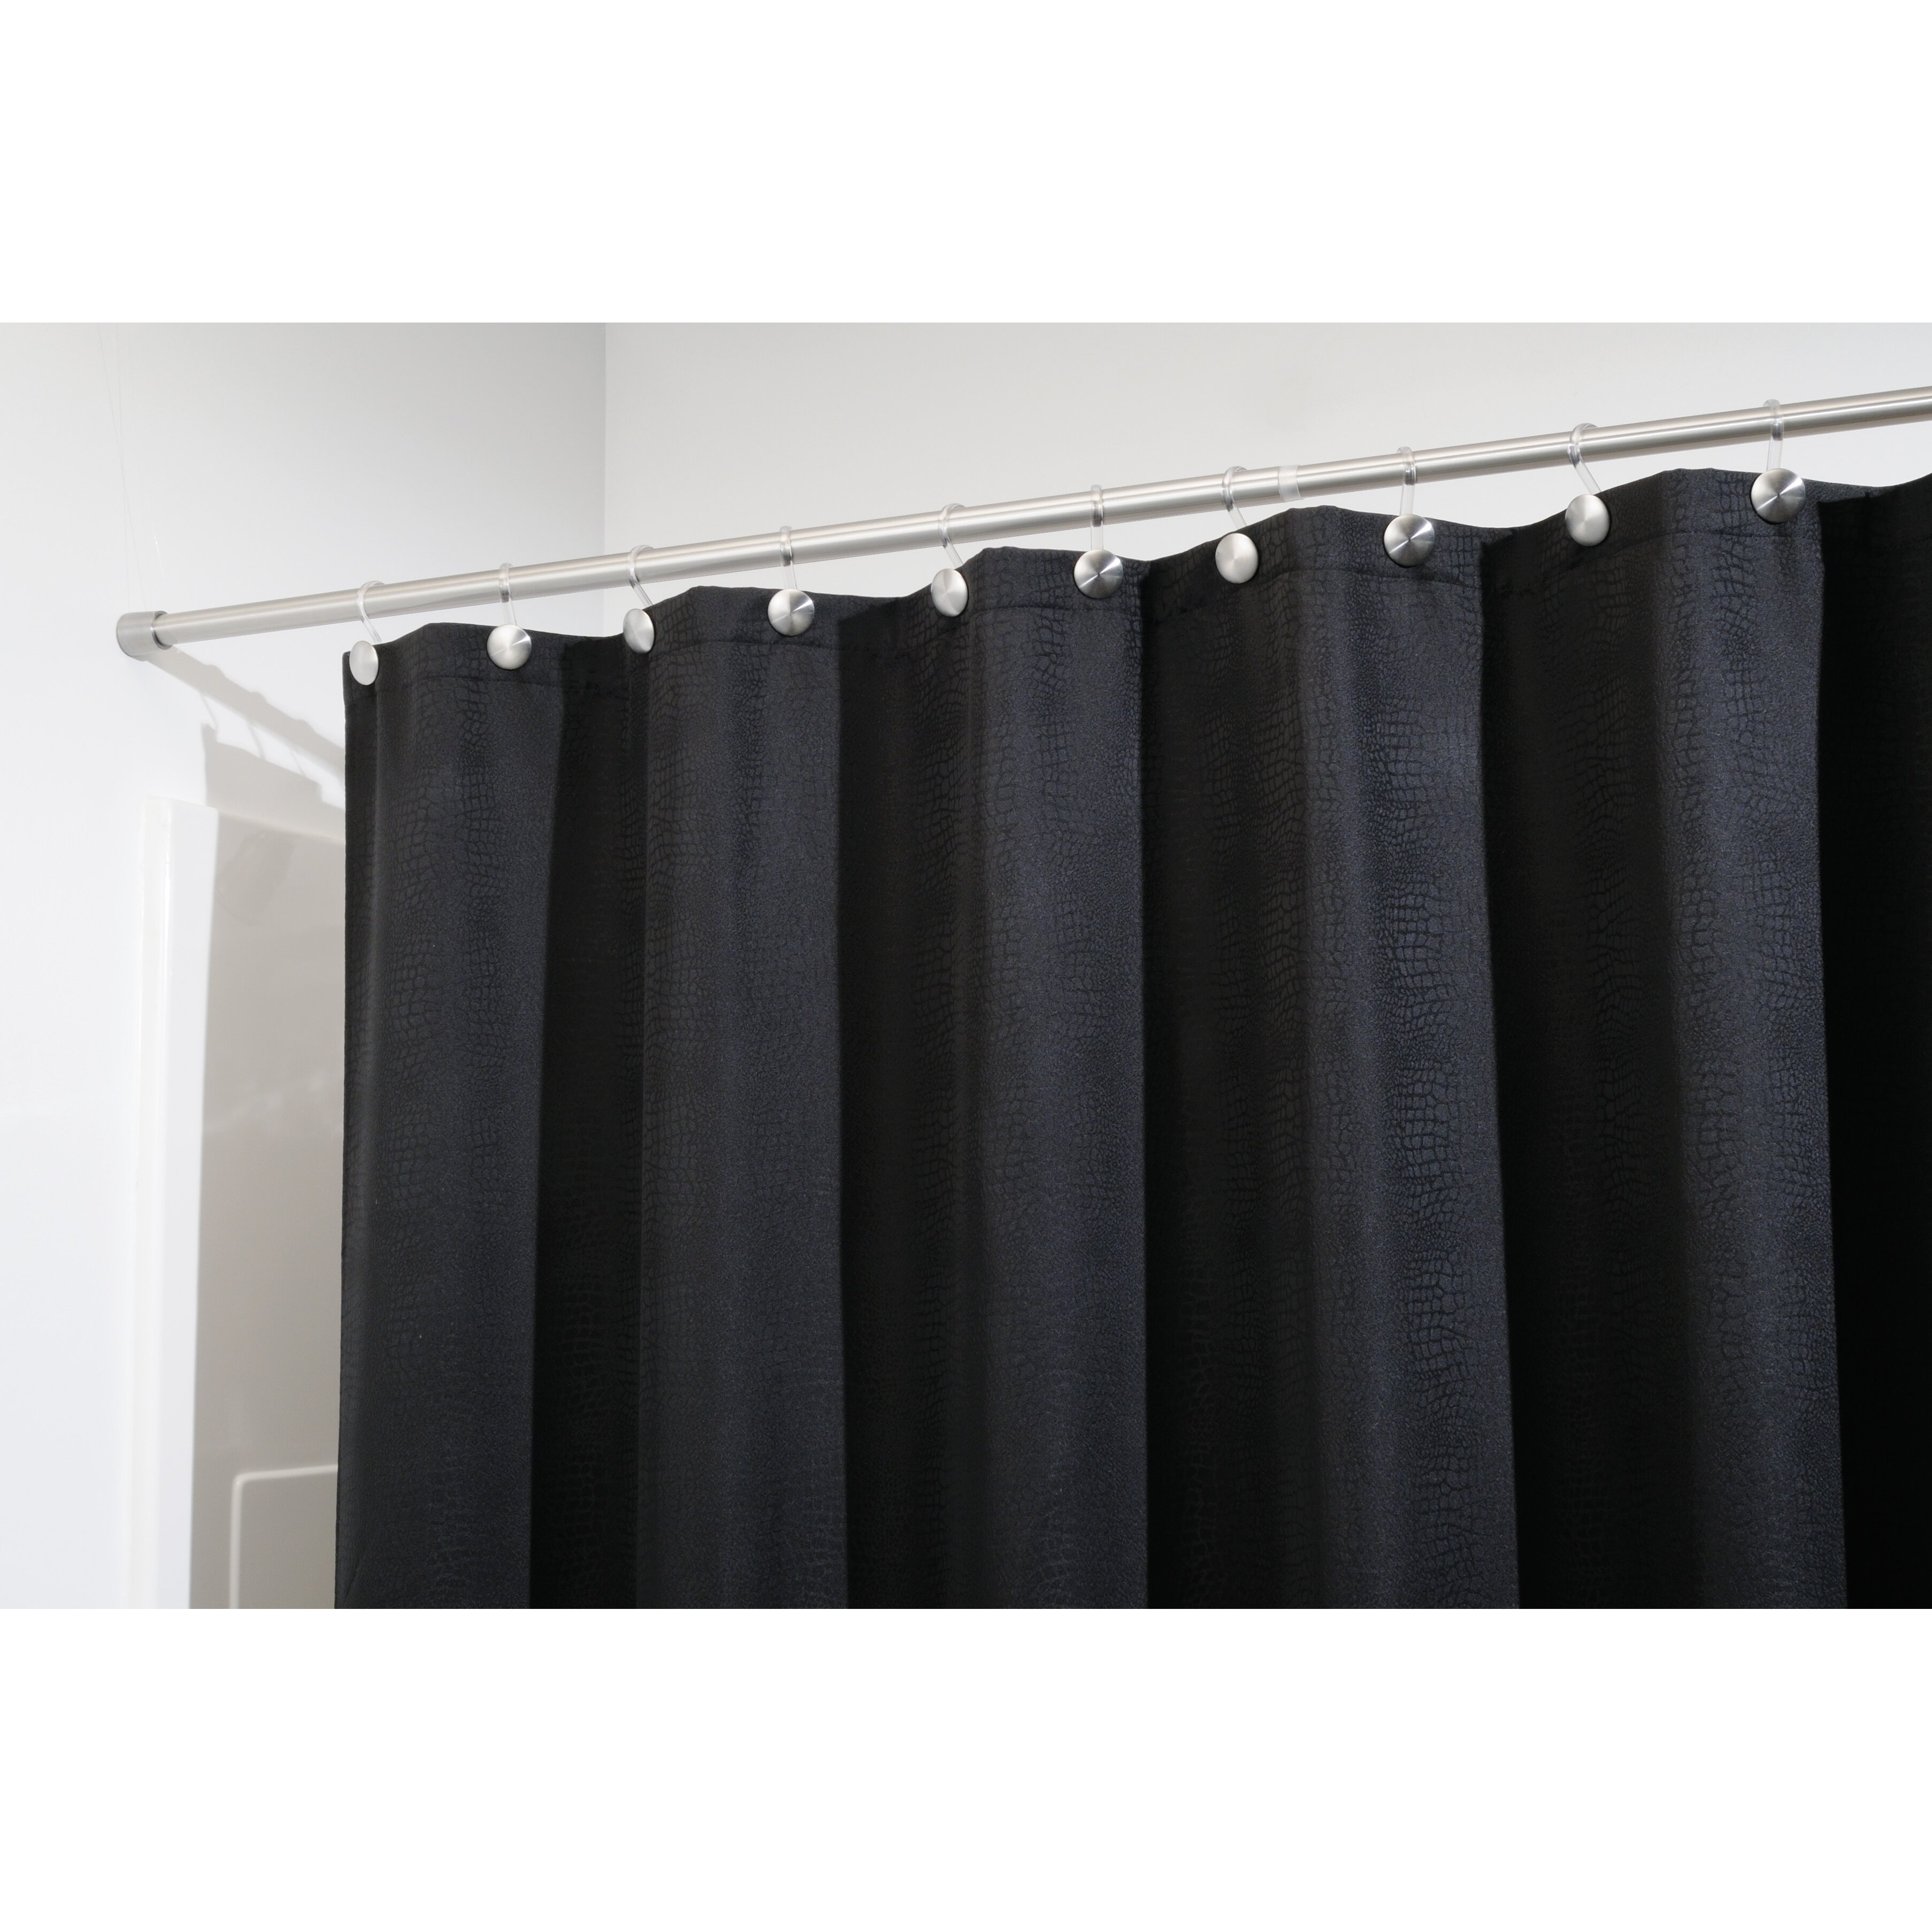 Interdesign forma small shower curtain tension rod for Inter designs